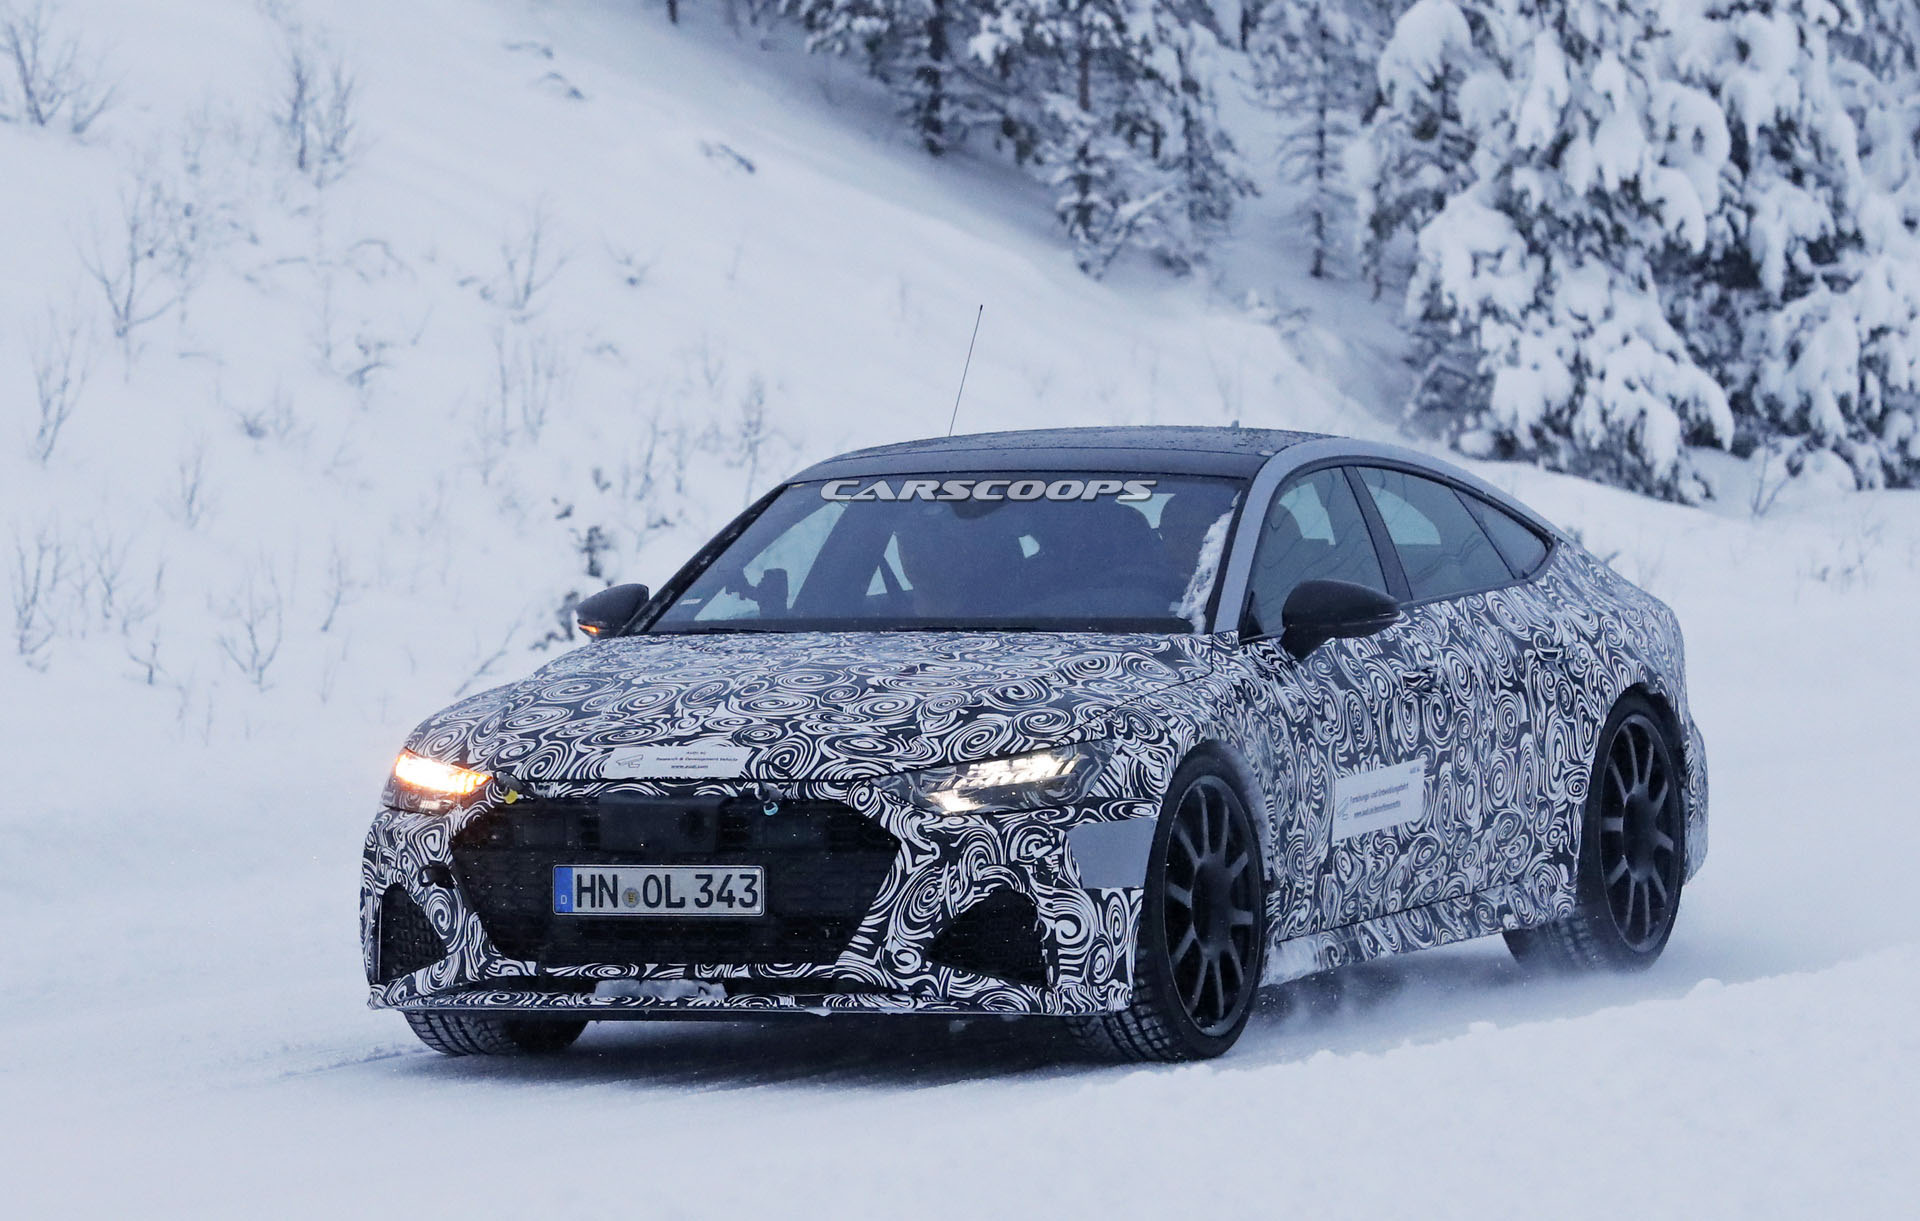 2019-Audi-RS7-Scoop-21